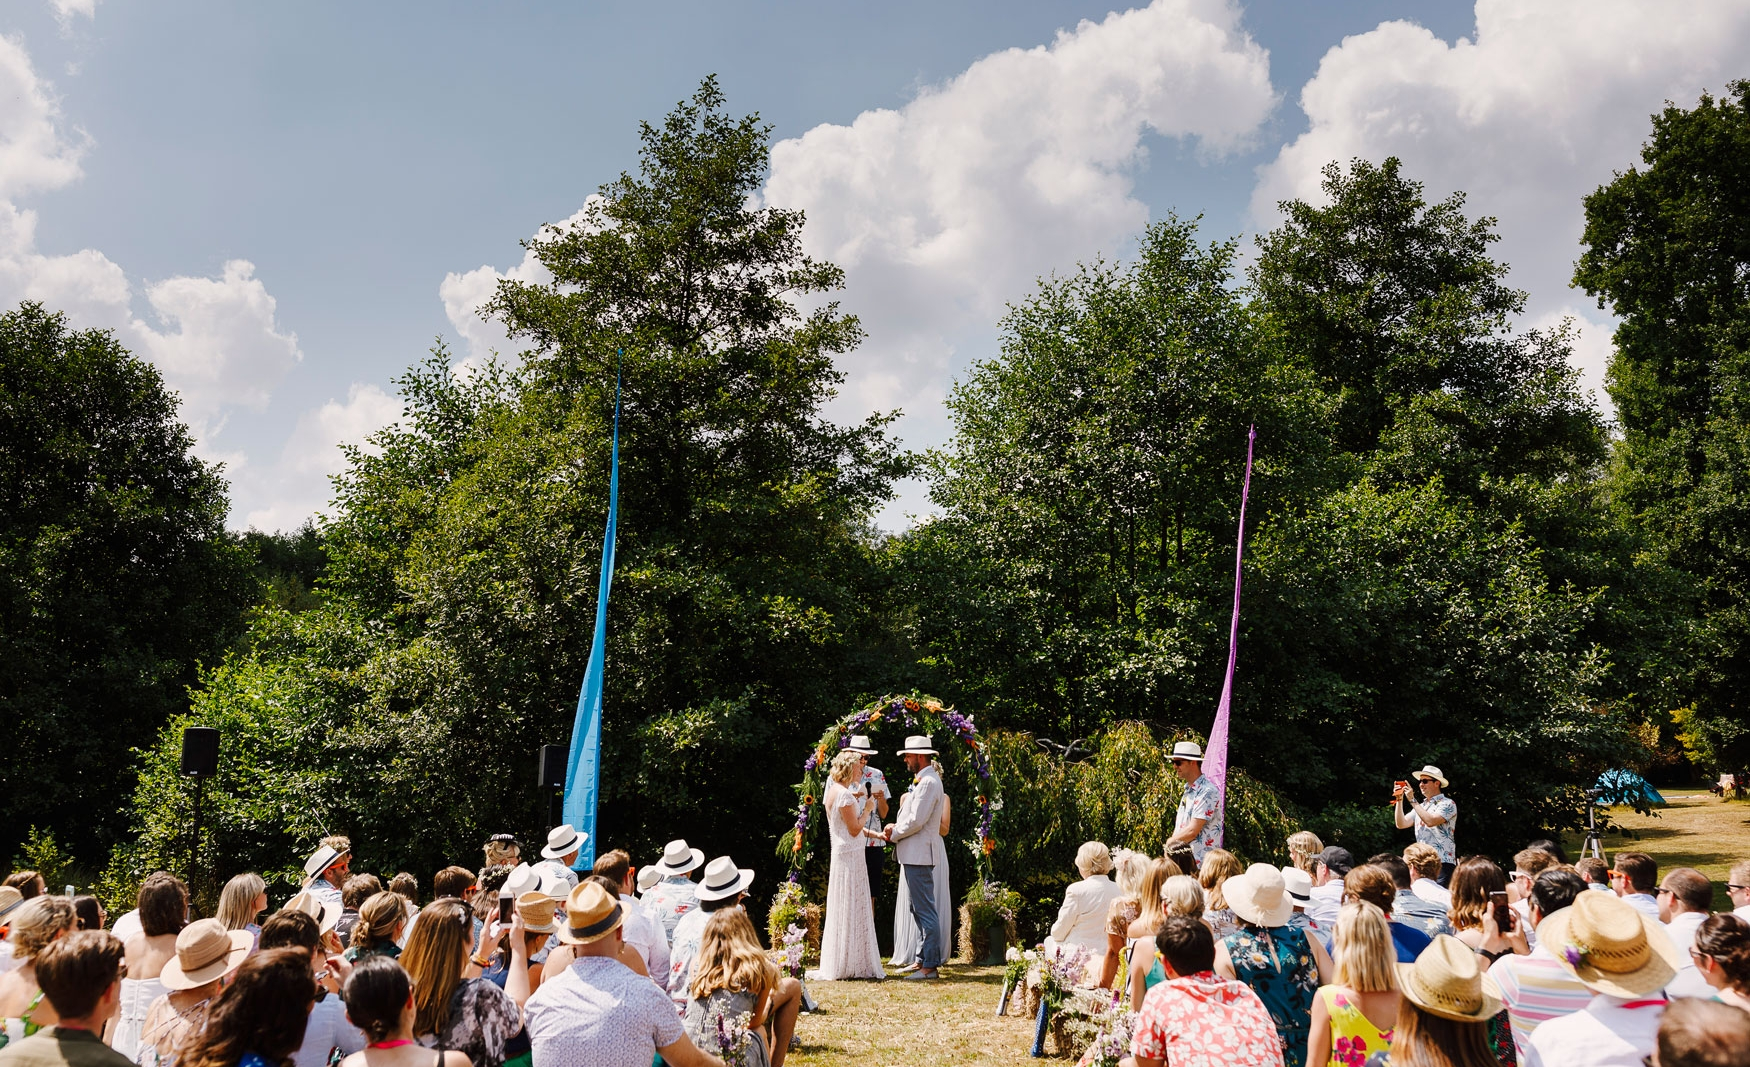 fiesta-fields-outdoor-wedding-events-company-tipi-surrey-sussex-spirit-lake-doking-5